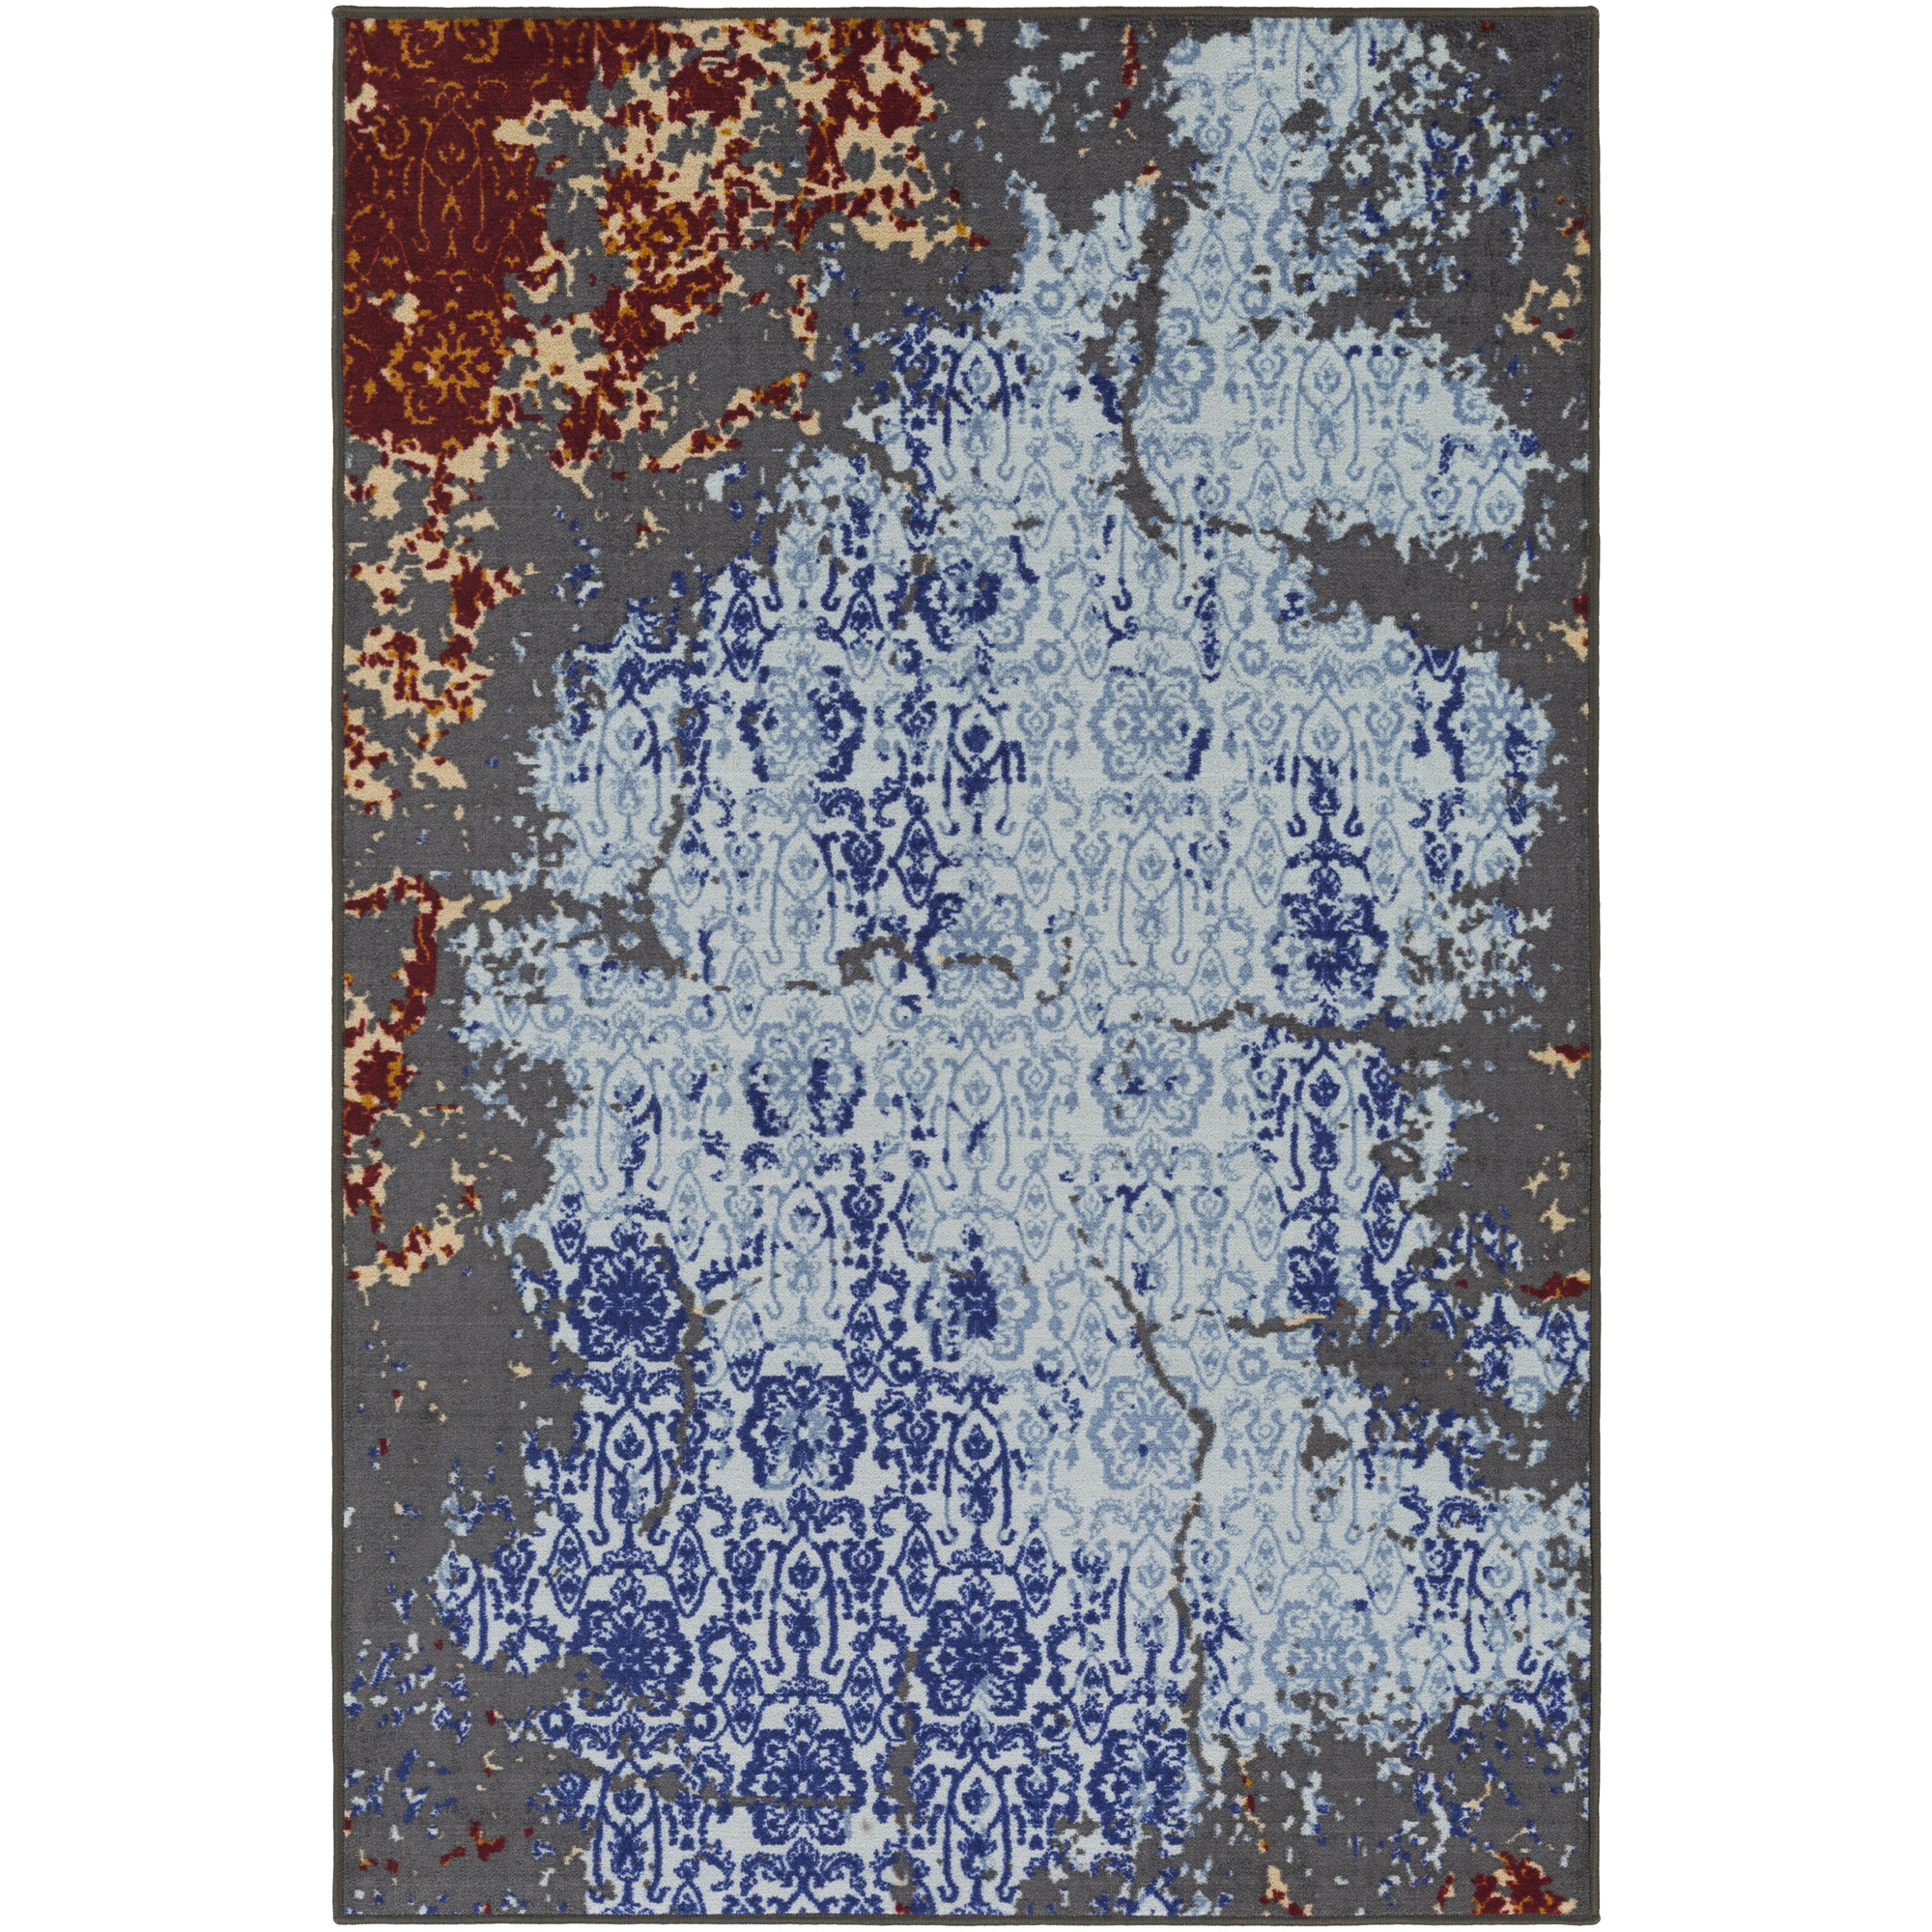 Art of Knot Alsuma 5' x 8' Rectangular Area Rug